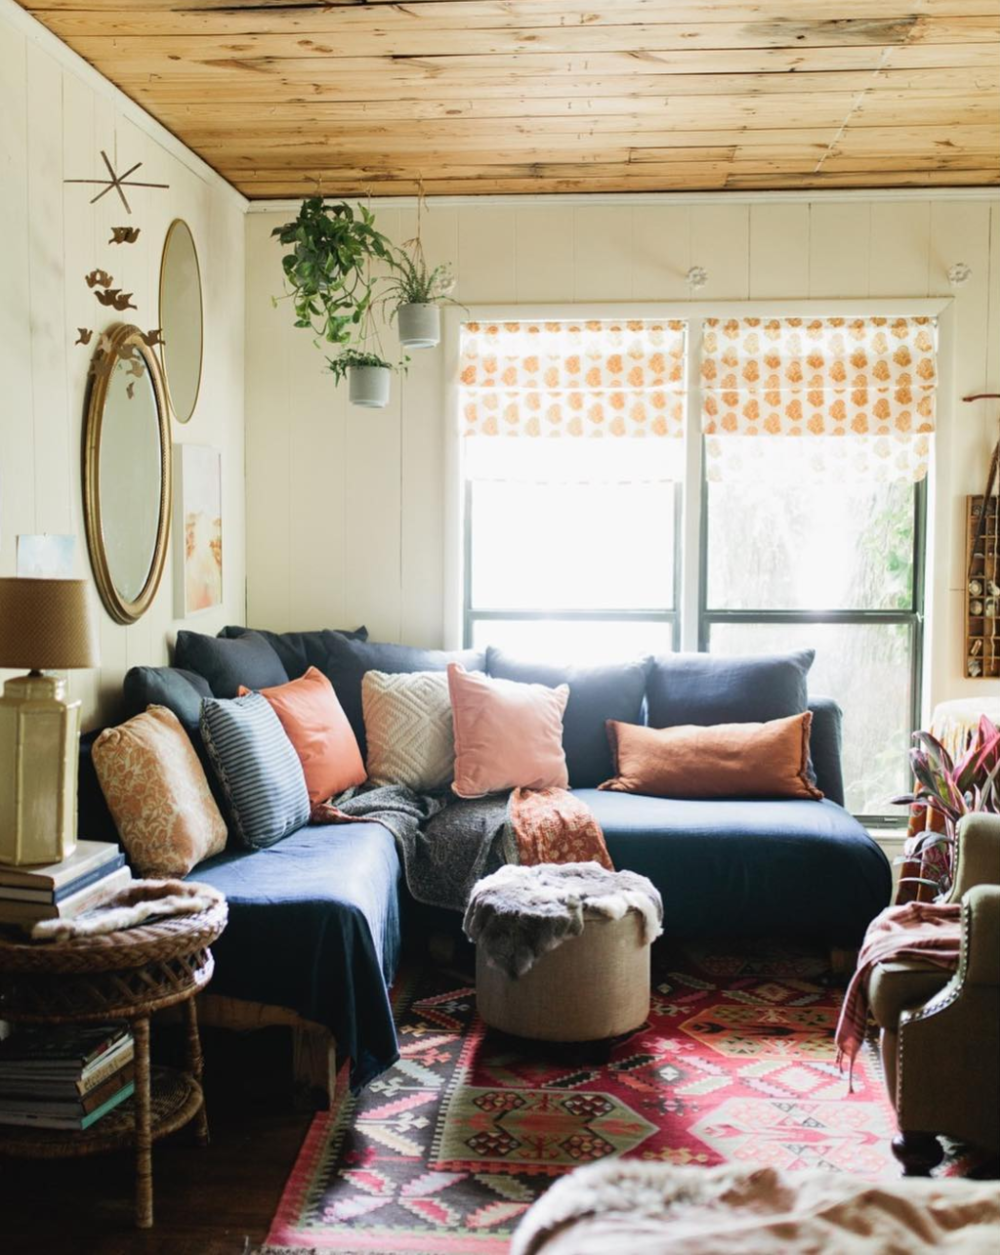 Katie King recently had her home profiled in the design blog, Design Sponge. You can check out the post  here  or her Instagram account, @curatinghome.